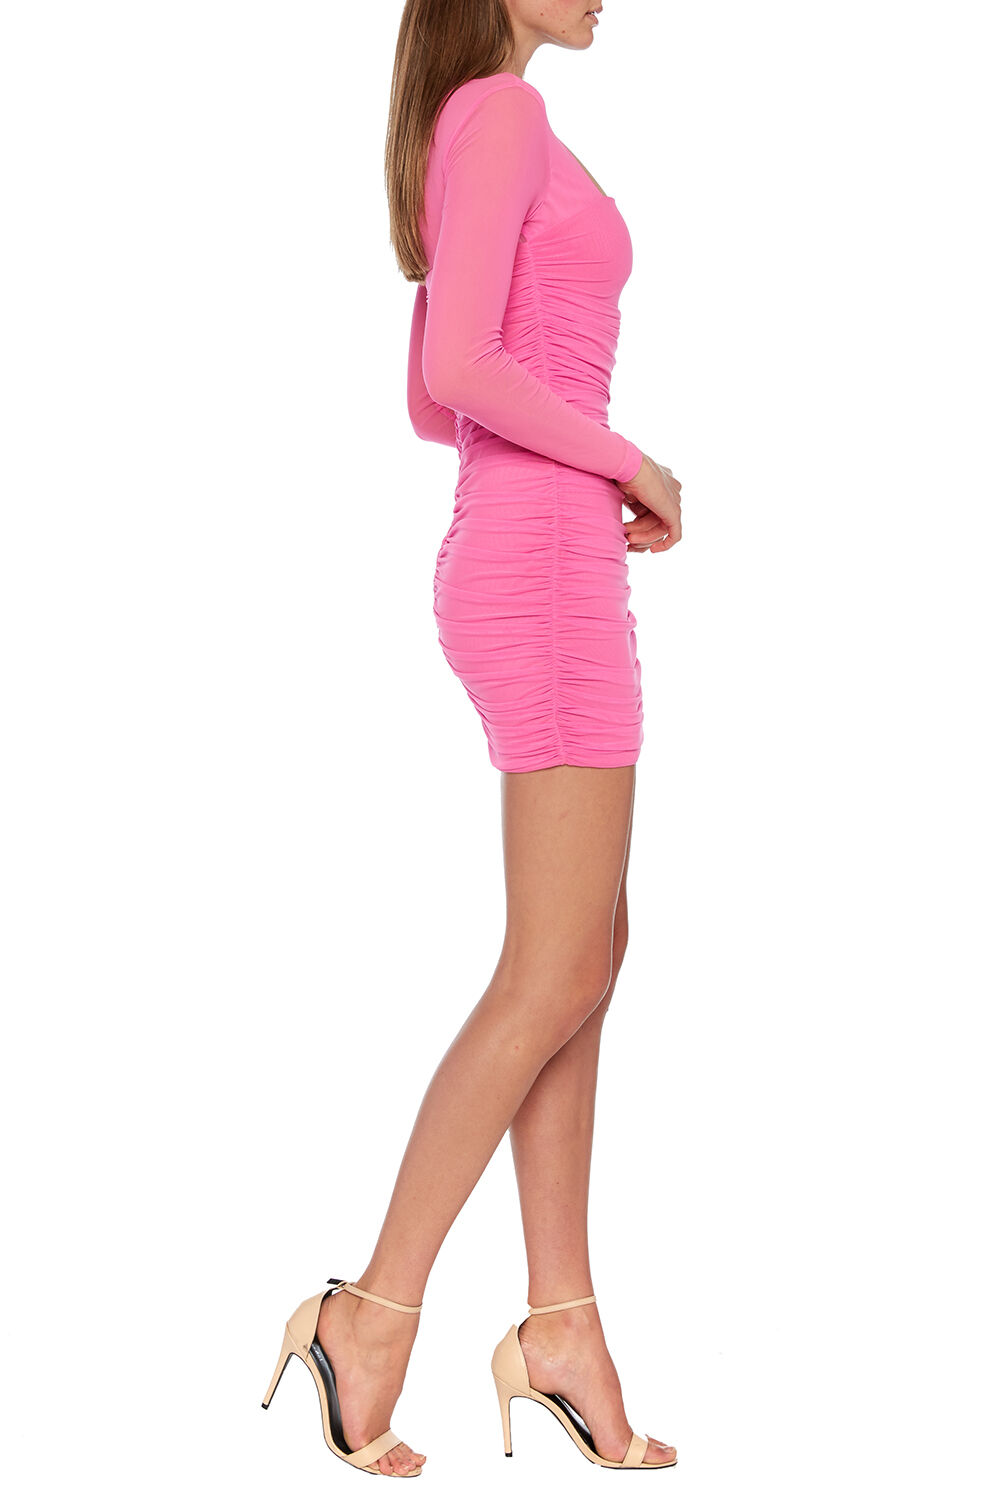 TASHA MESH DRESS in colour SHOCKING PINK